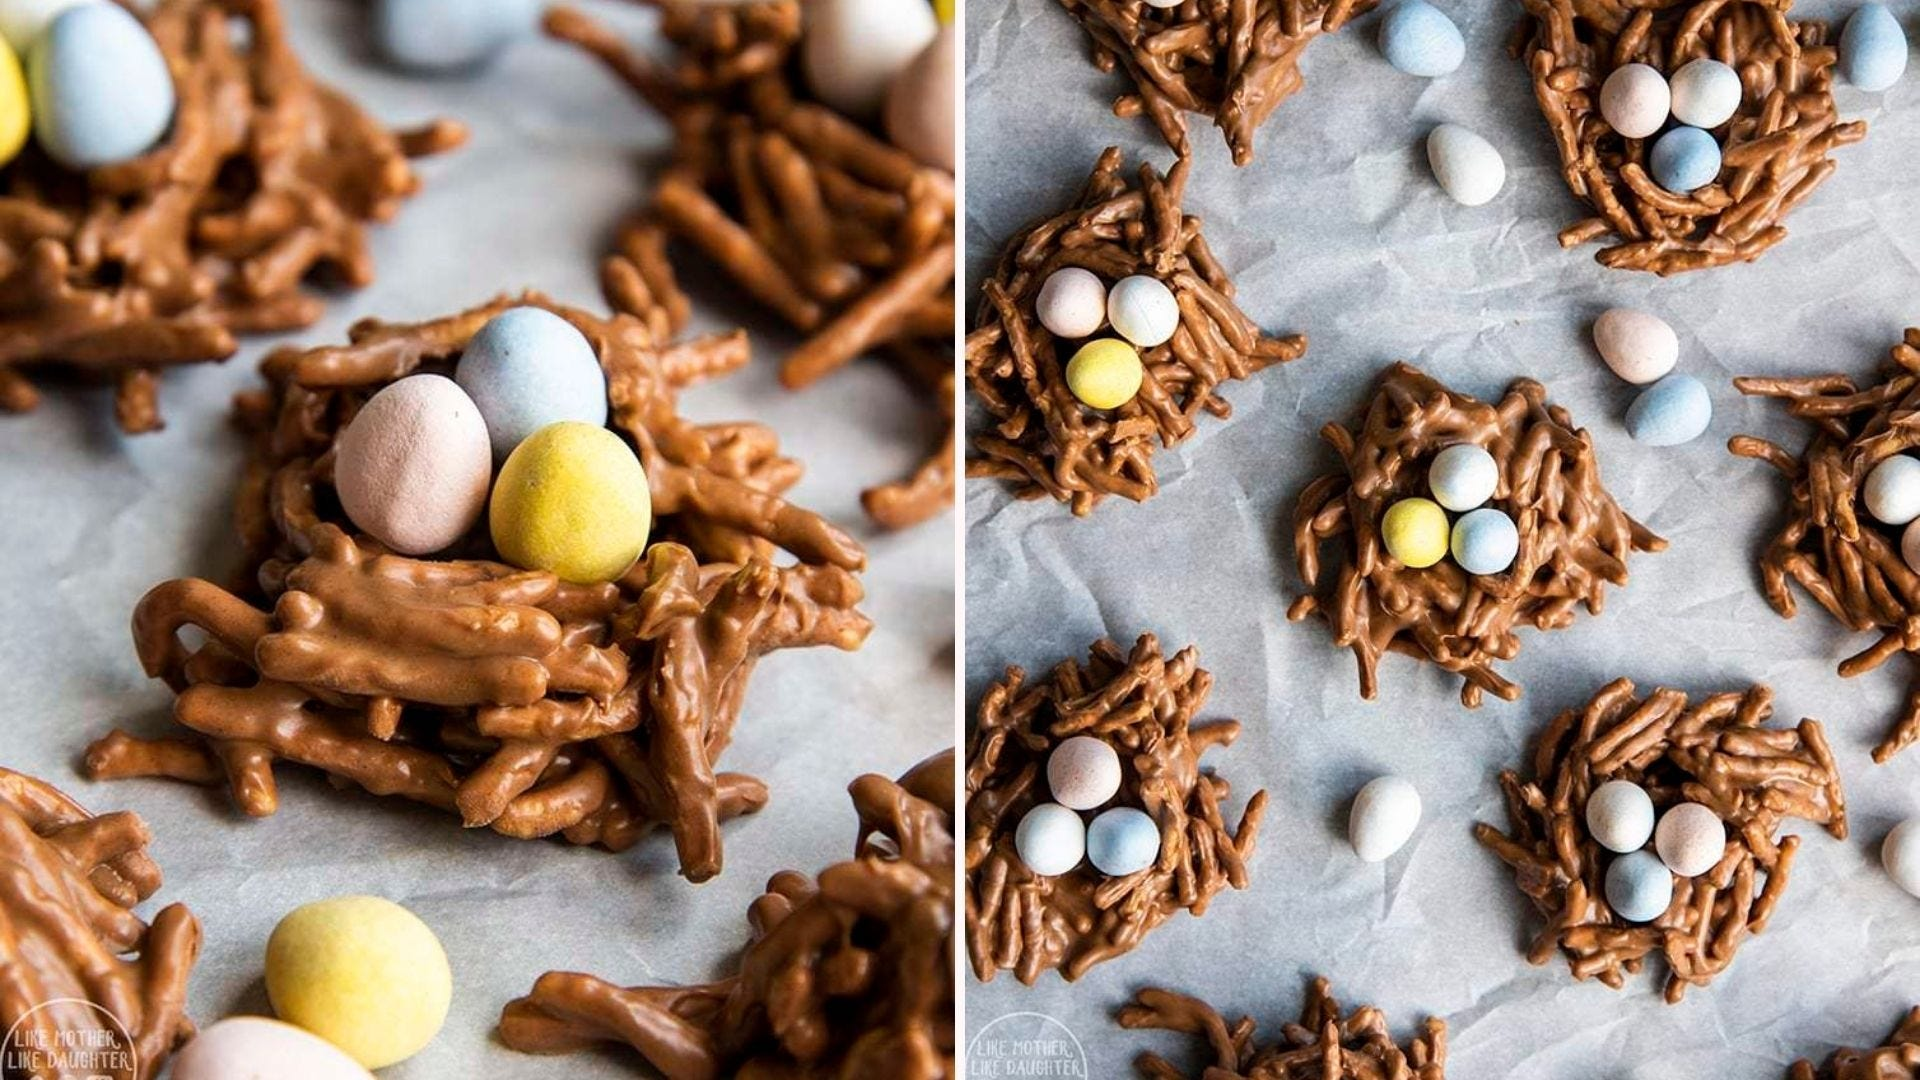 Two image of chow mien bird's nest cookies topped with Cadbury eggs. The left image is a close up and the right image is a over shot.